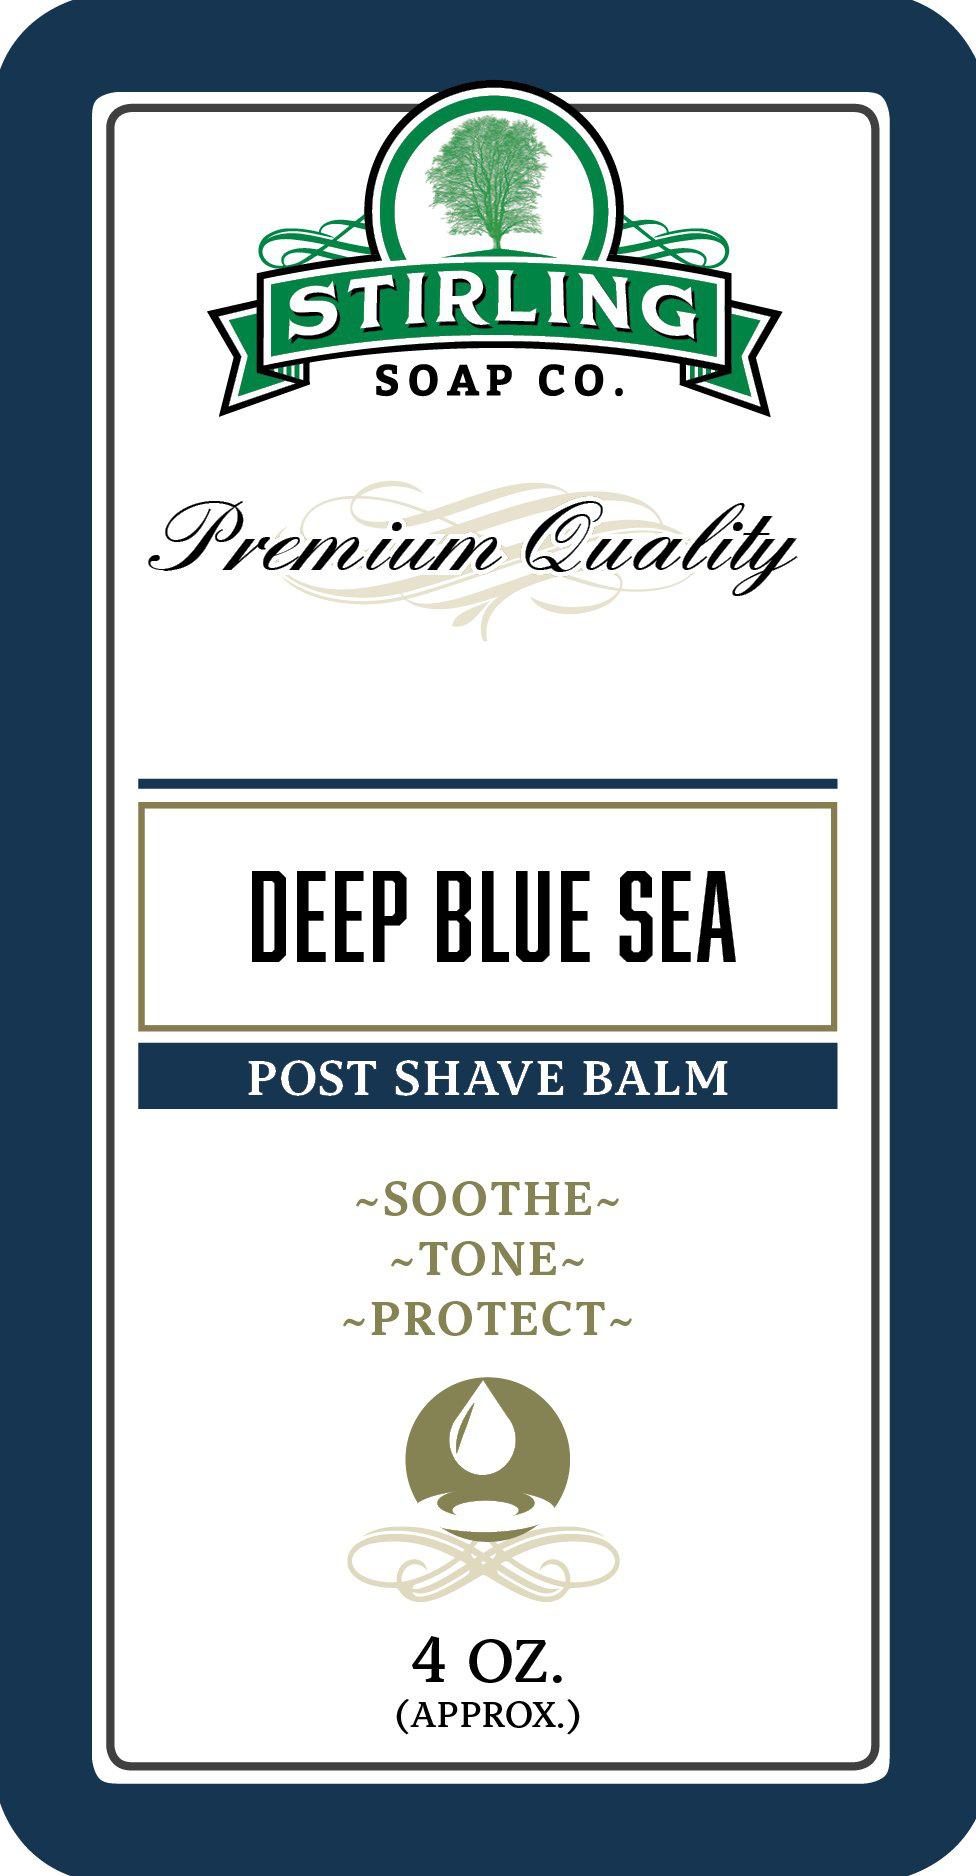 Stirling Soap Co. - Deep Blue Sea - Balm image